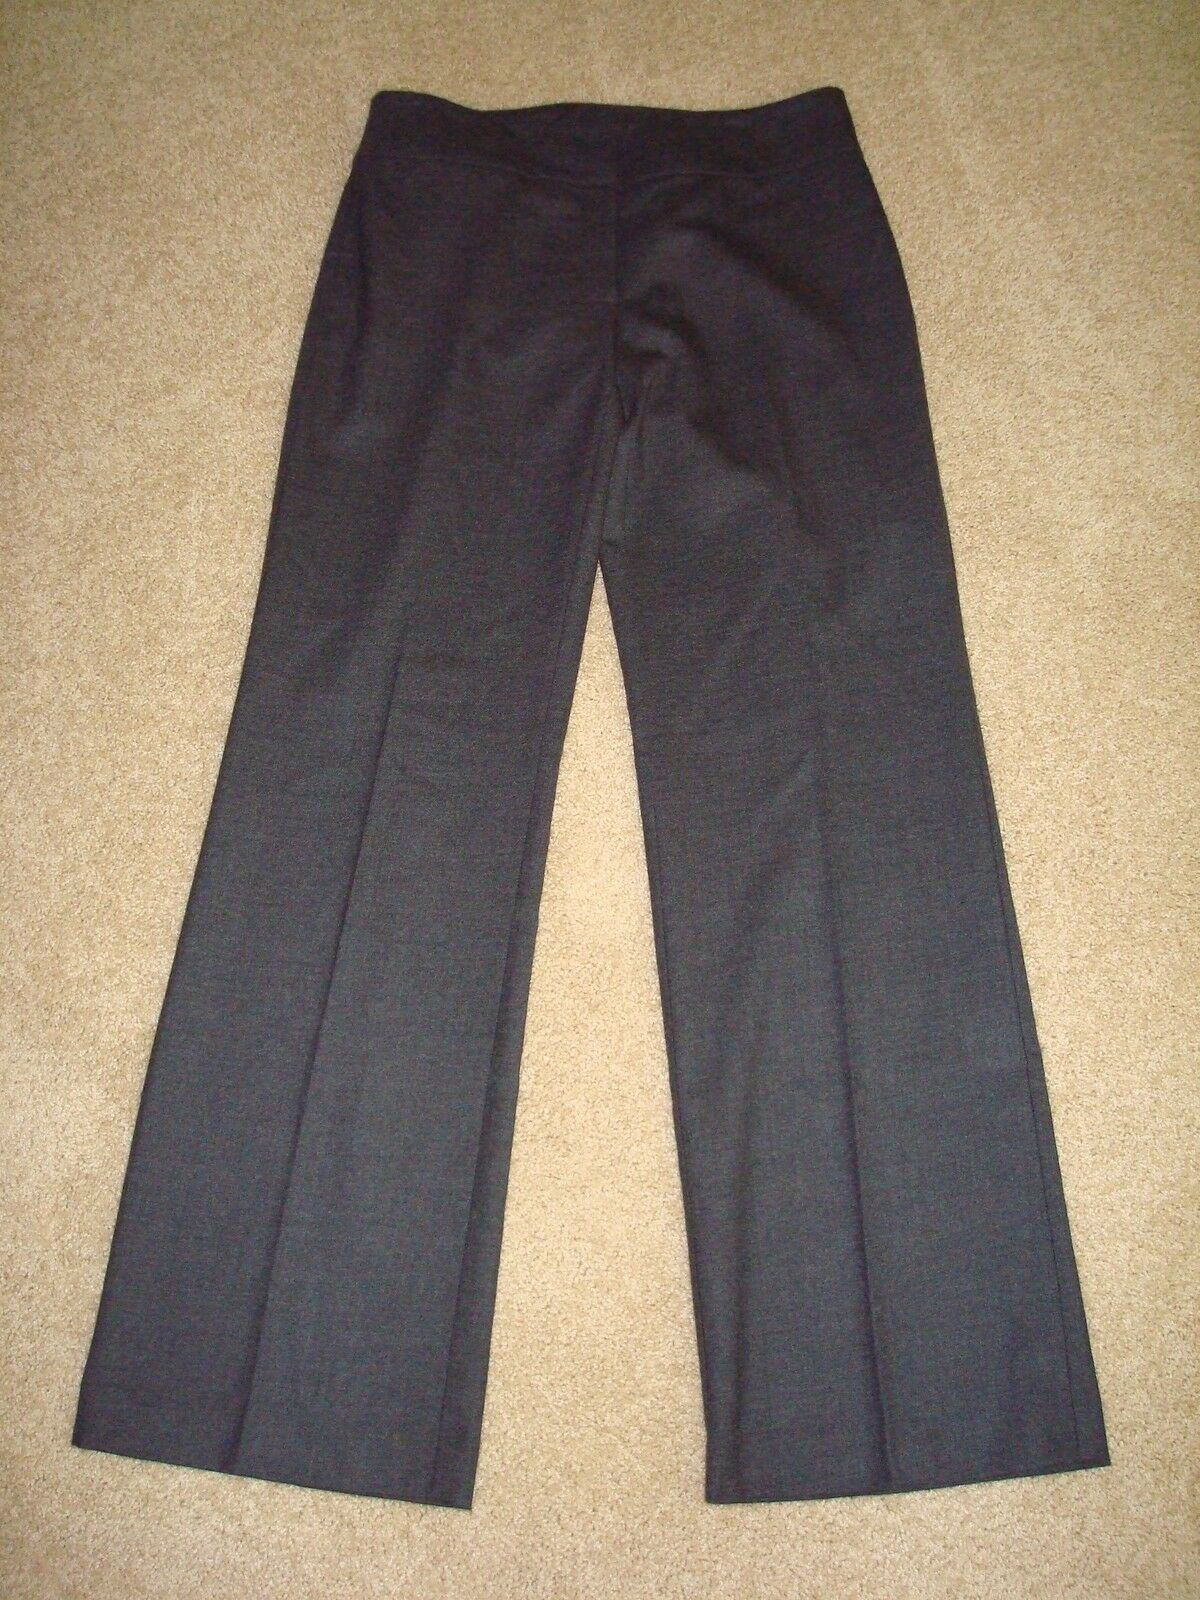 NWT Eileen Fisher Trouser with Yoke Pants Stretch Flannel Twill    - 8